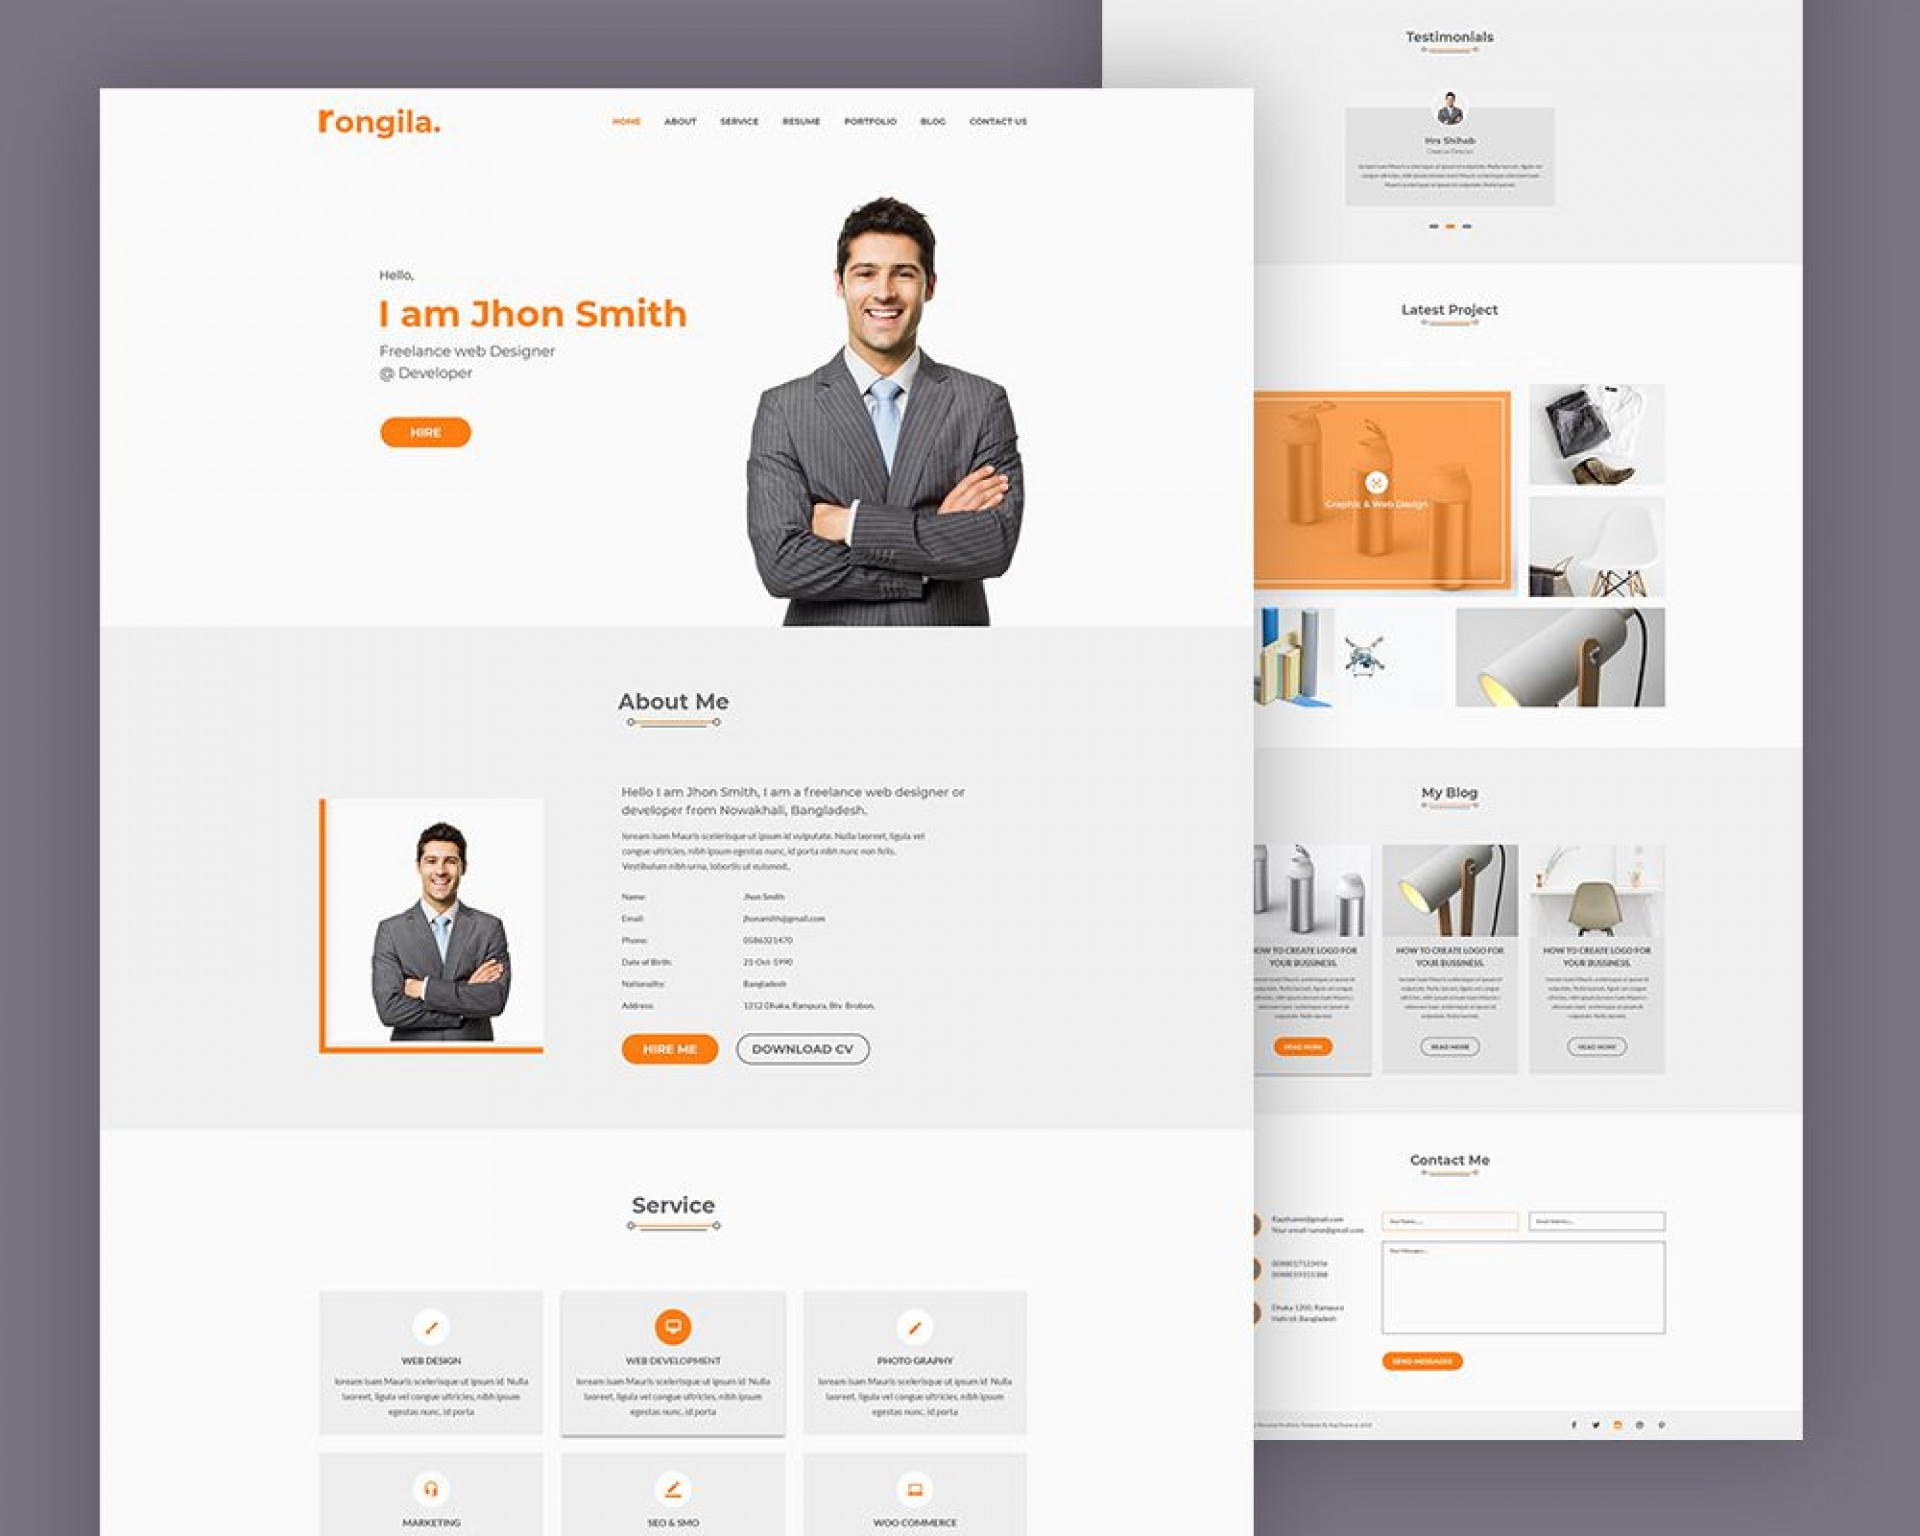 005 Imposing Free Portfolio Website Template Photo  Templates For Web Developer Photography Html51920